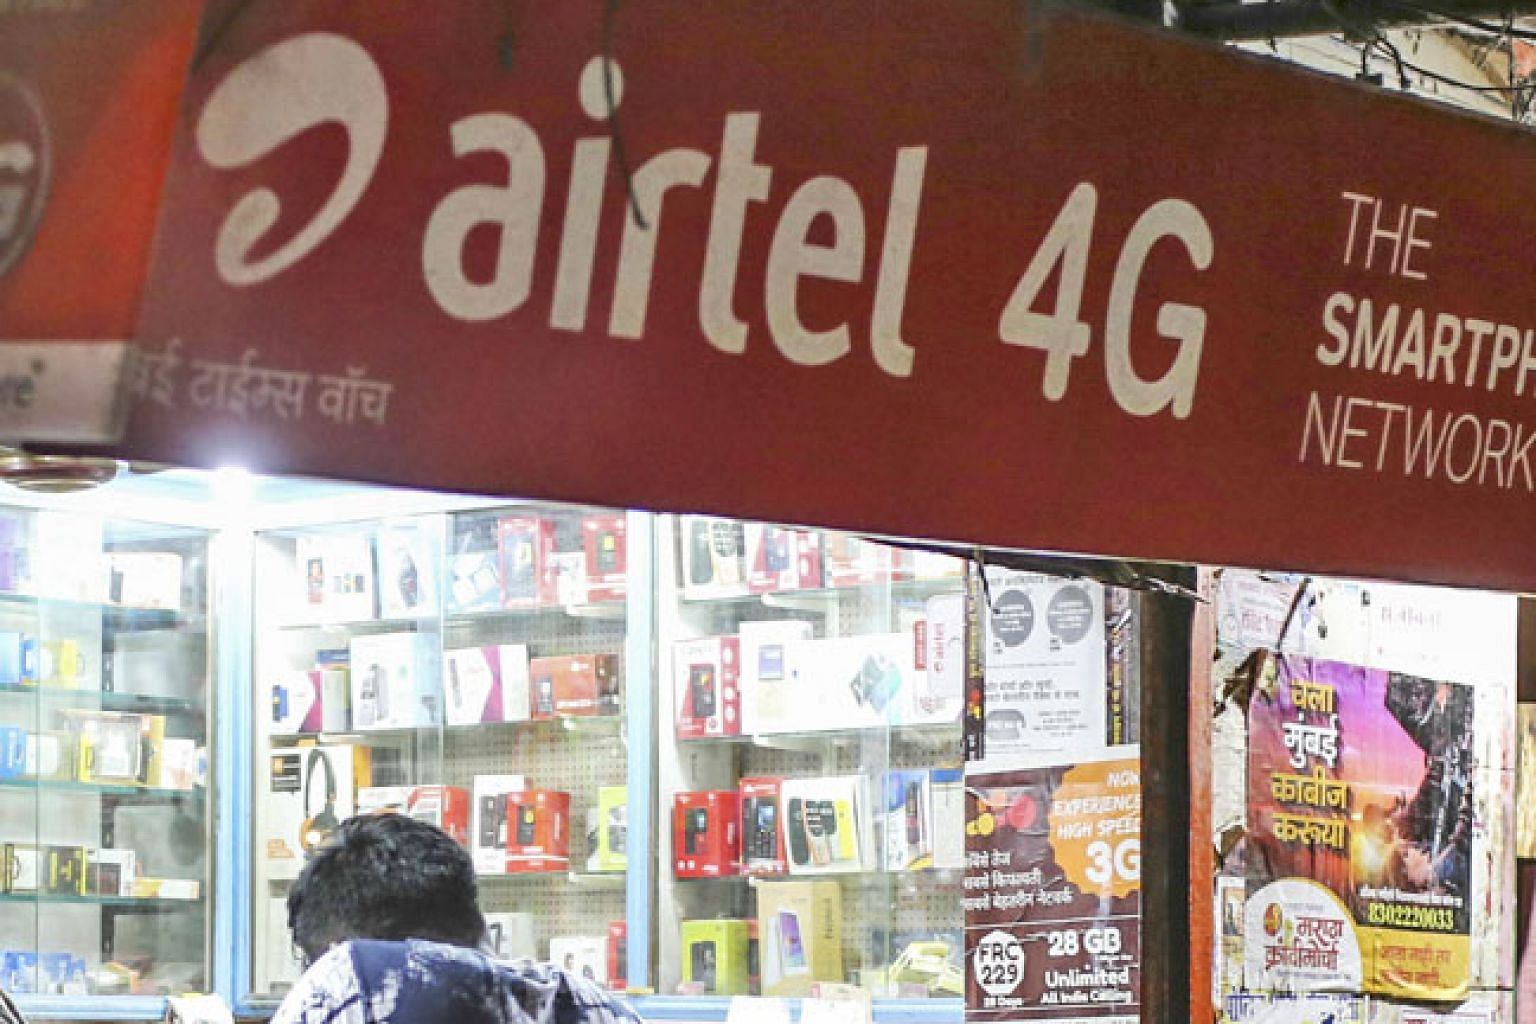 Bharti Airtel advertisements at a phone store in Mumbai, India. Bharti's fundraising exercise may affect Singtel's A1 credit rating.